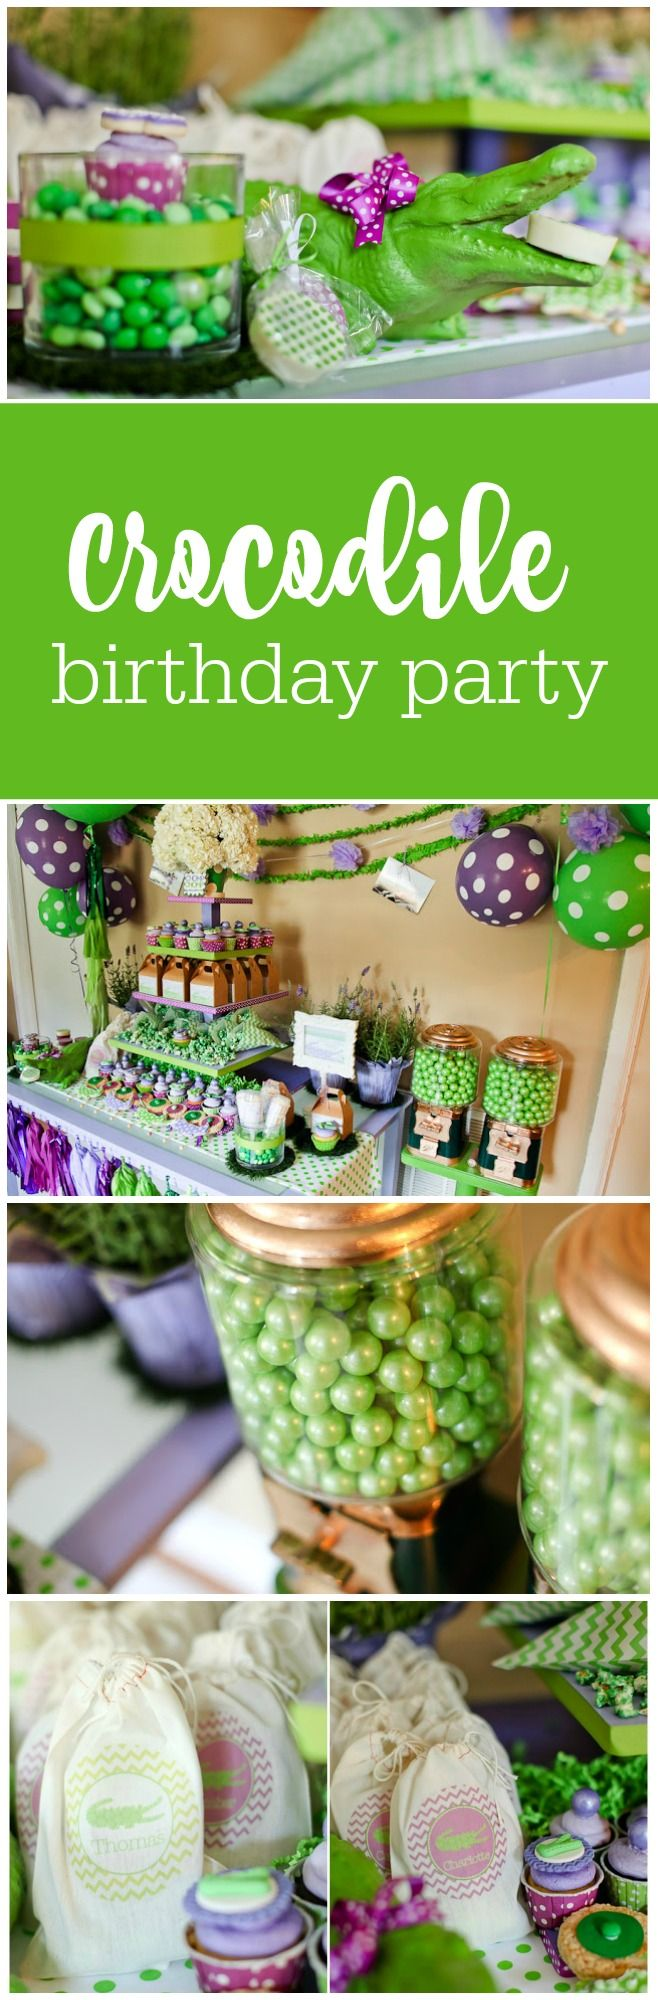 Darling crocodile birthday party by Party Box Designs featured on The Party Teacher | http://thepartyteacher.com/2013/07/15/guest-party-giveaway-party-box-design-crocodile-party/